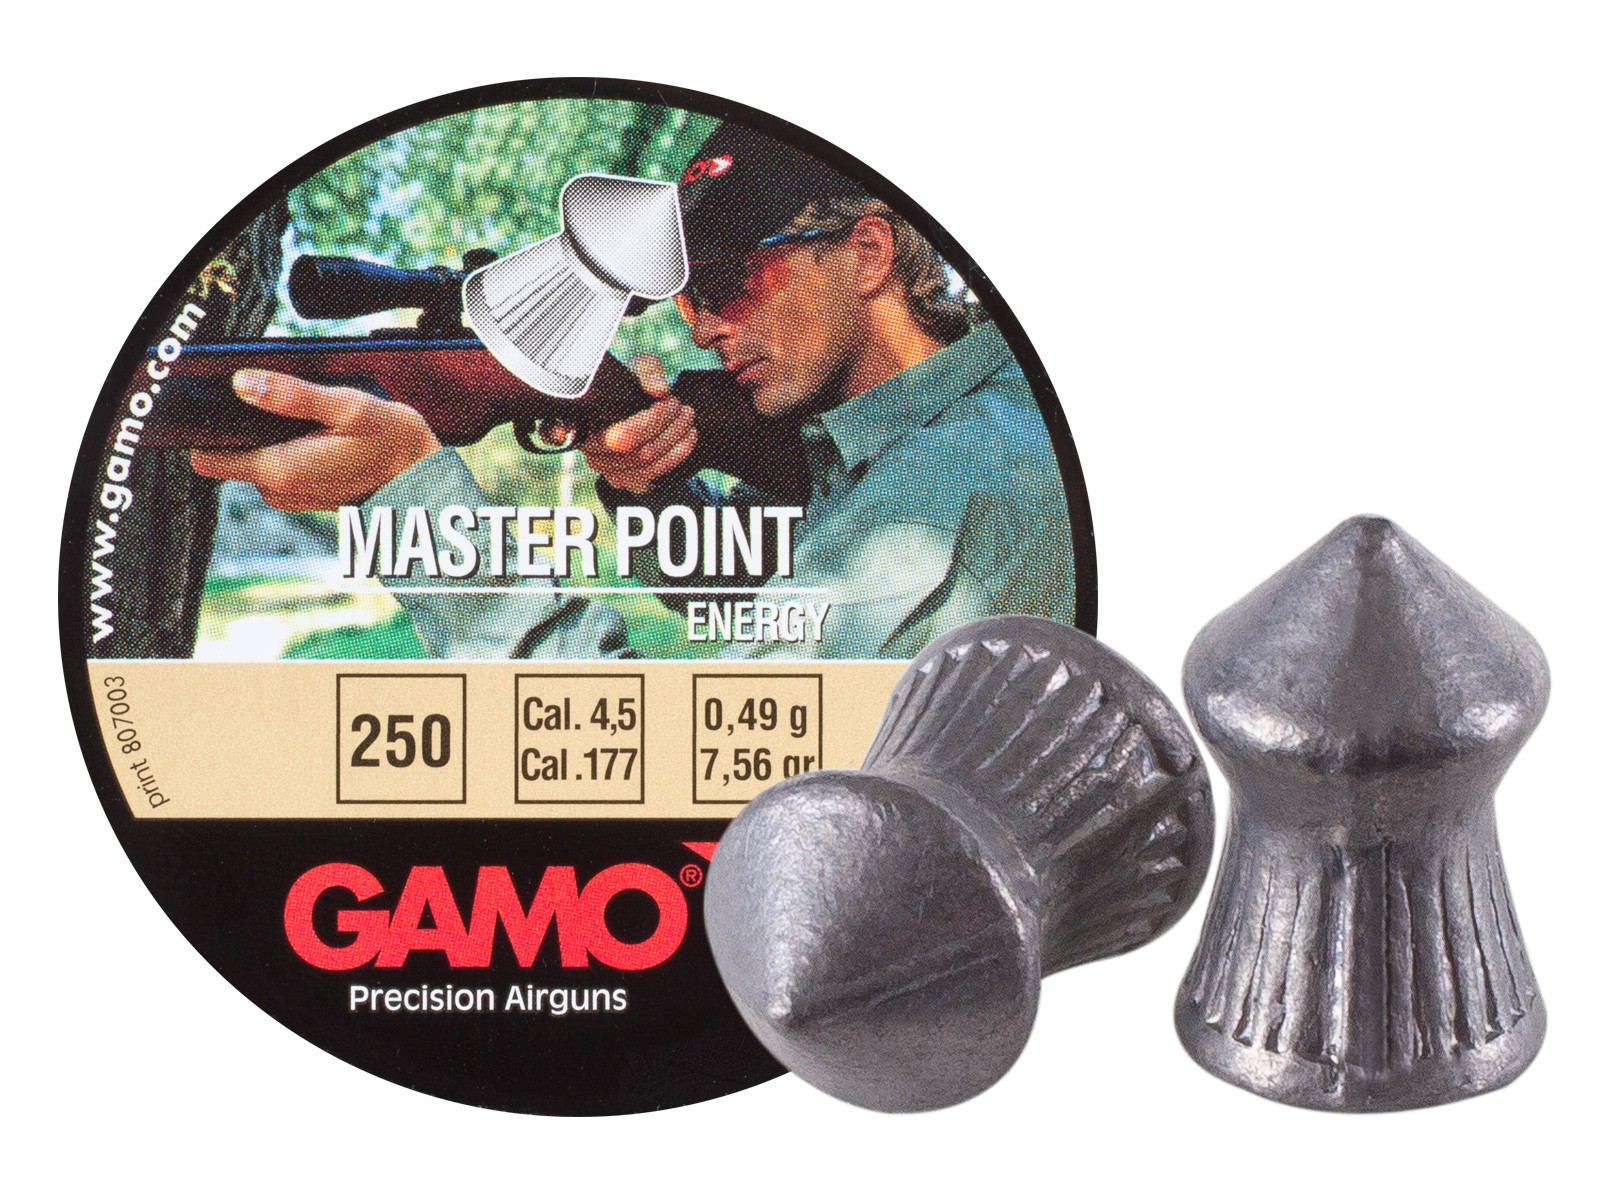 Gamo Master Point .177 Cal, 7.56 Grains, Pointed, 250ct